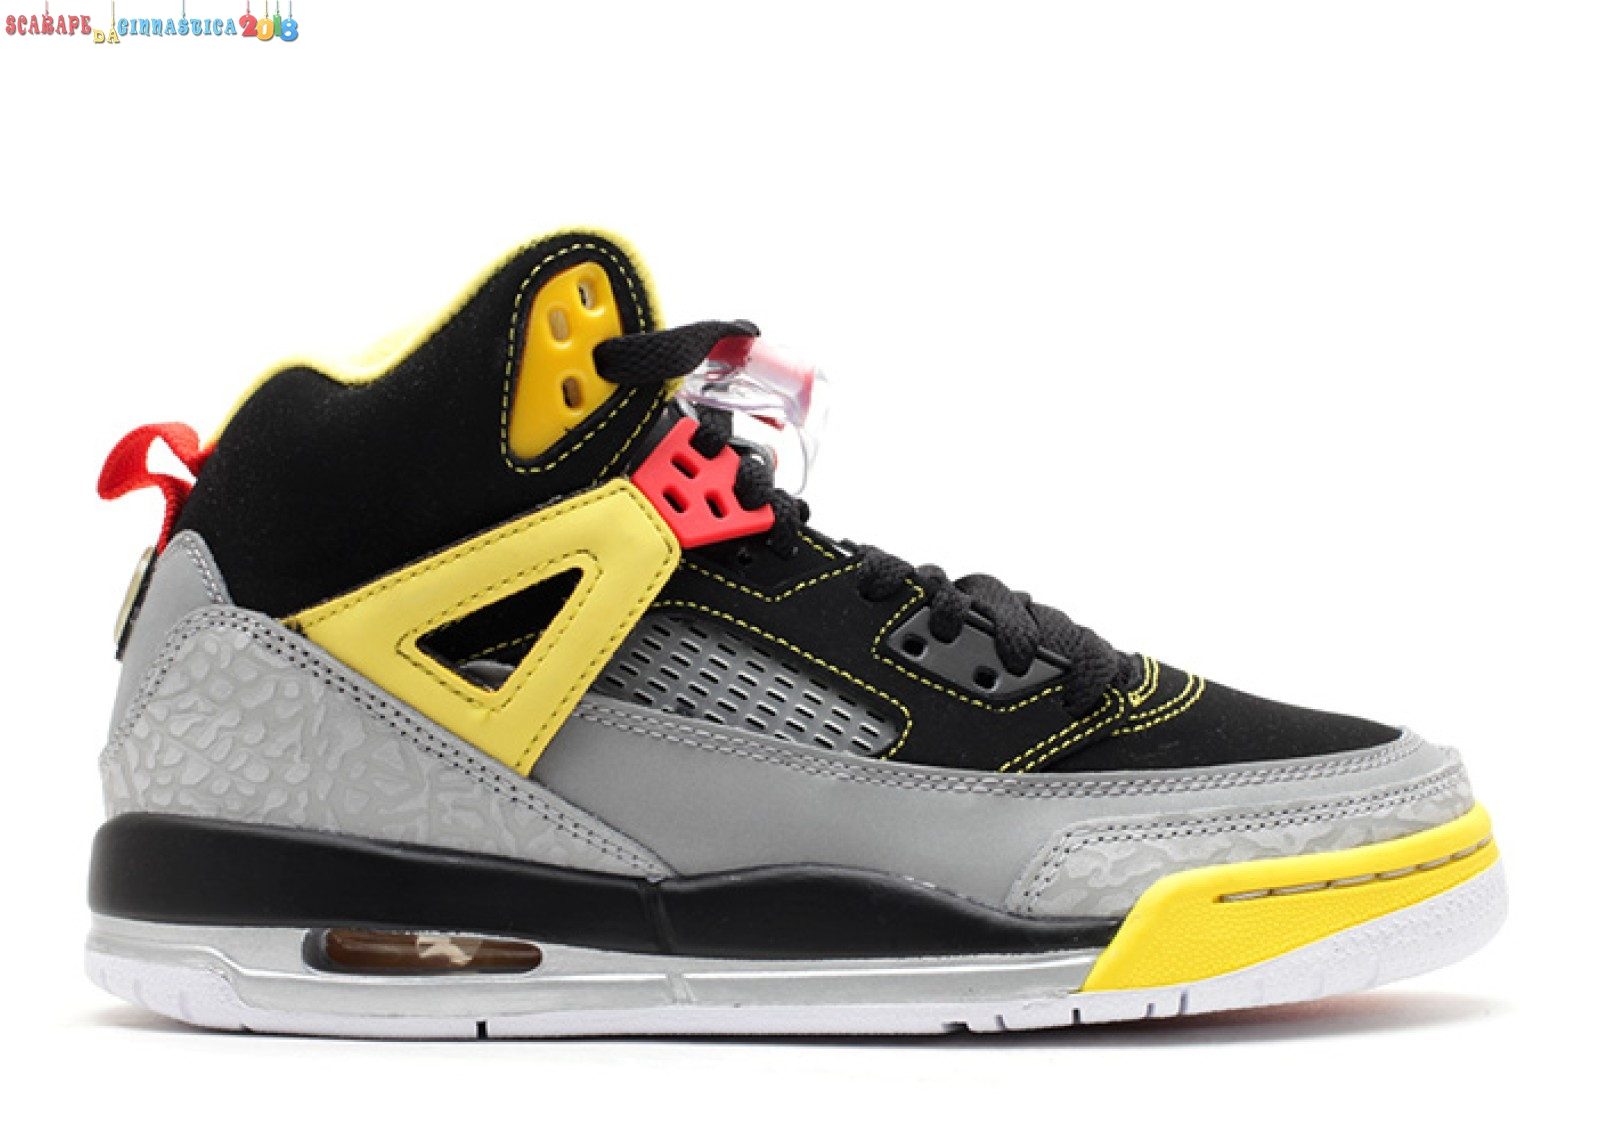 Acquisto Air Jordan Spiz'Ike (Gs) Nero Gris Giallo (317321-050) Replica